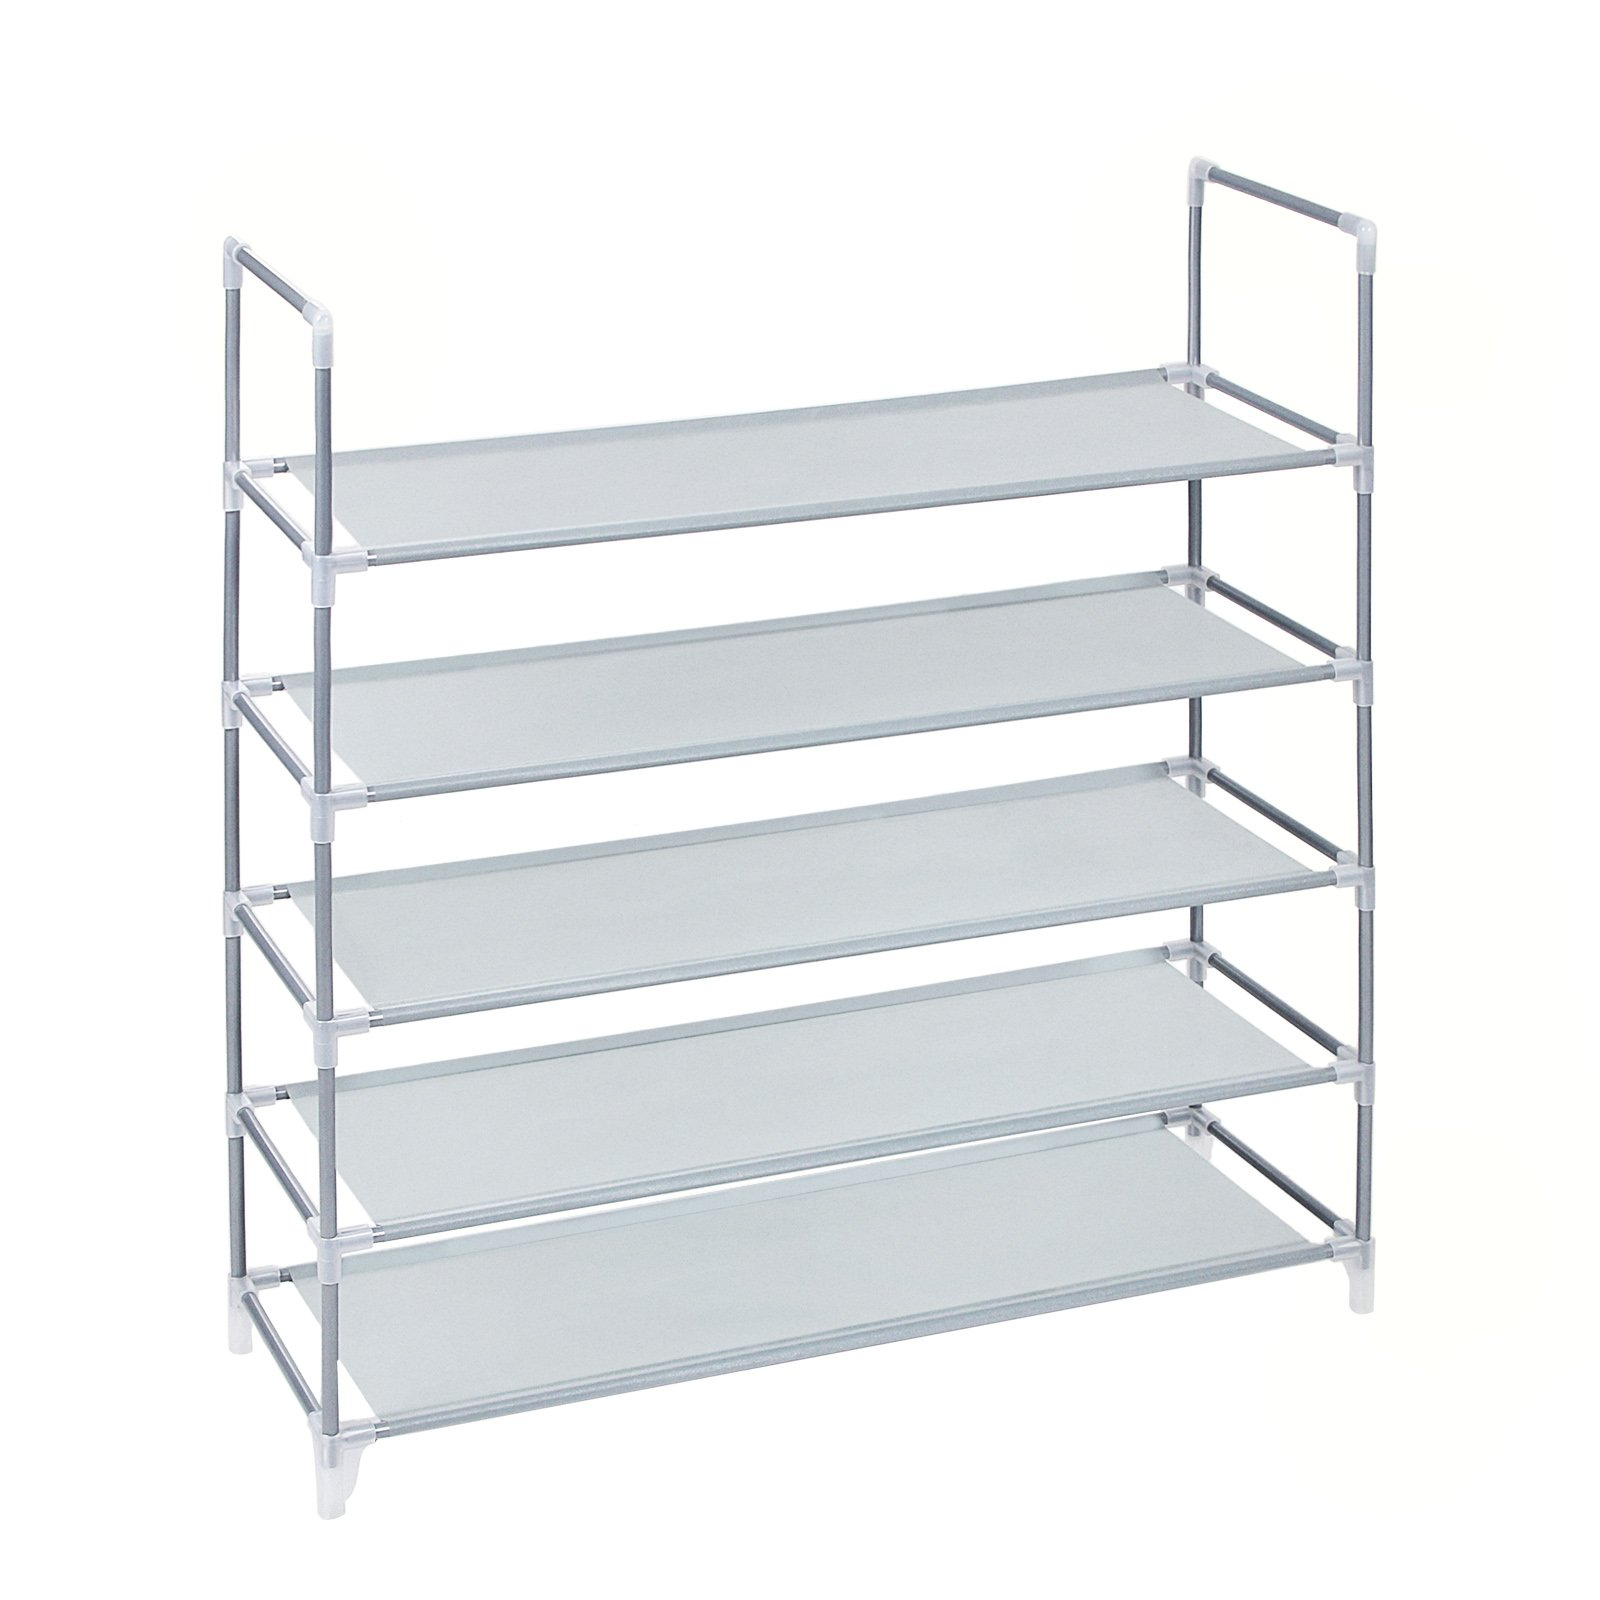 SONGMICS 5 Tiers Utility Steel Shoe Rack Non-woven Fabric Shoe Storage Organizer Cabinet Tower Stackable Shelves Holds 25 Pairs Of Shoes - 39 3/8'' x 11 1/8'' x 36 1/4'' Gray ULSR05G